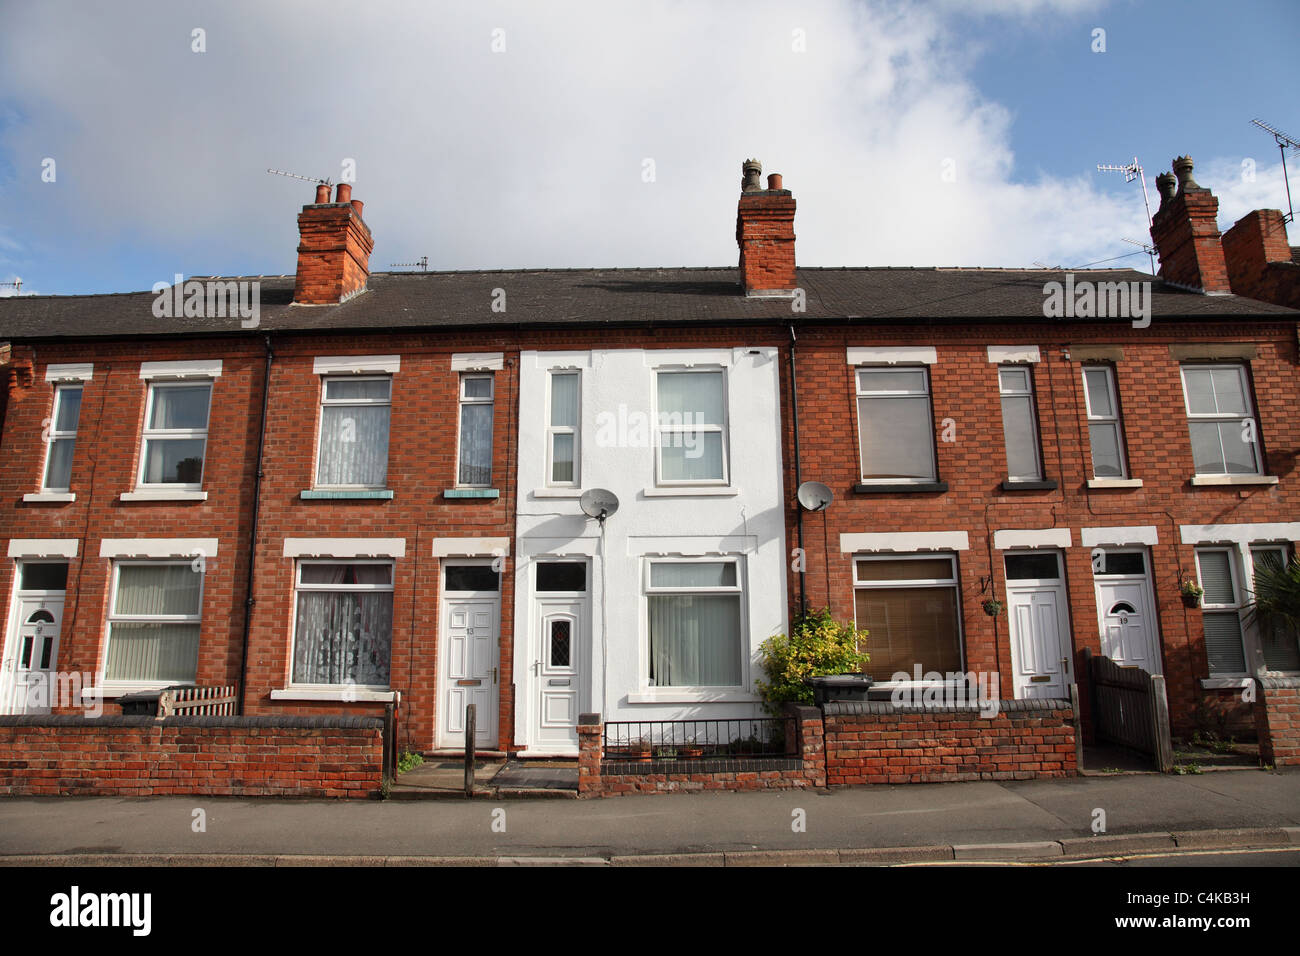 Terraced houses in arnold nottingham england u k stock for What is terrace house